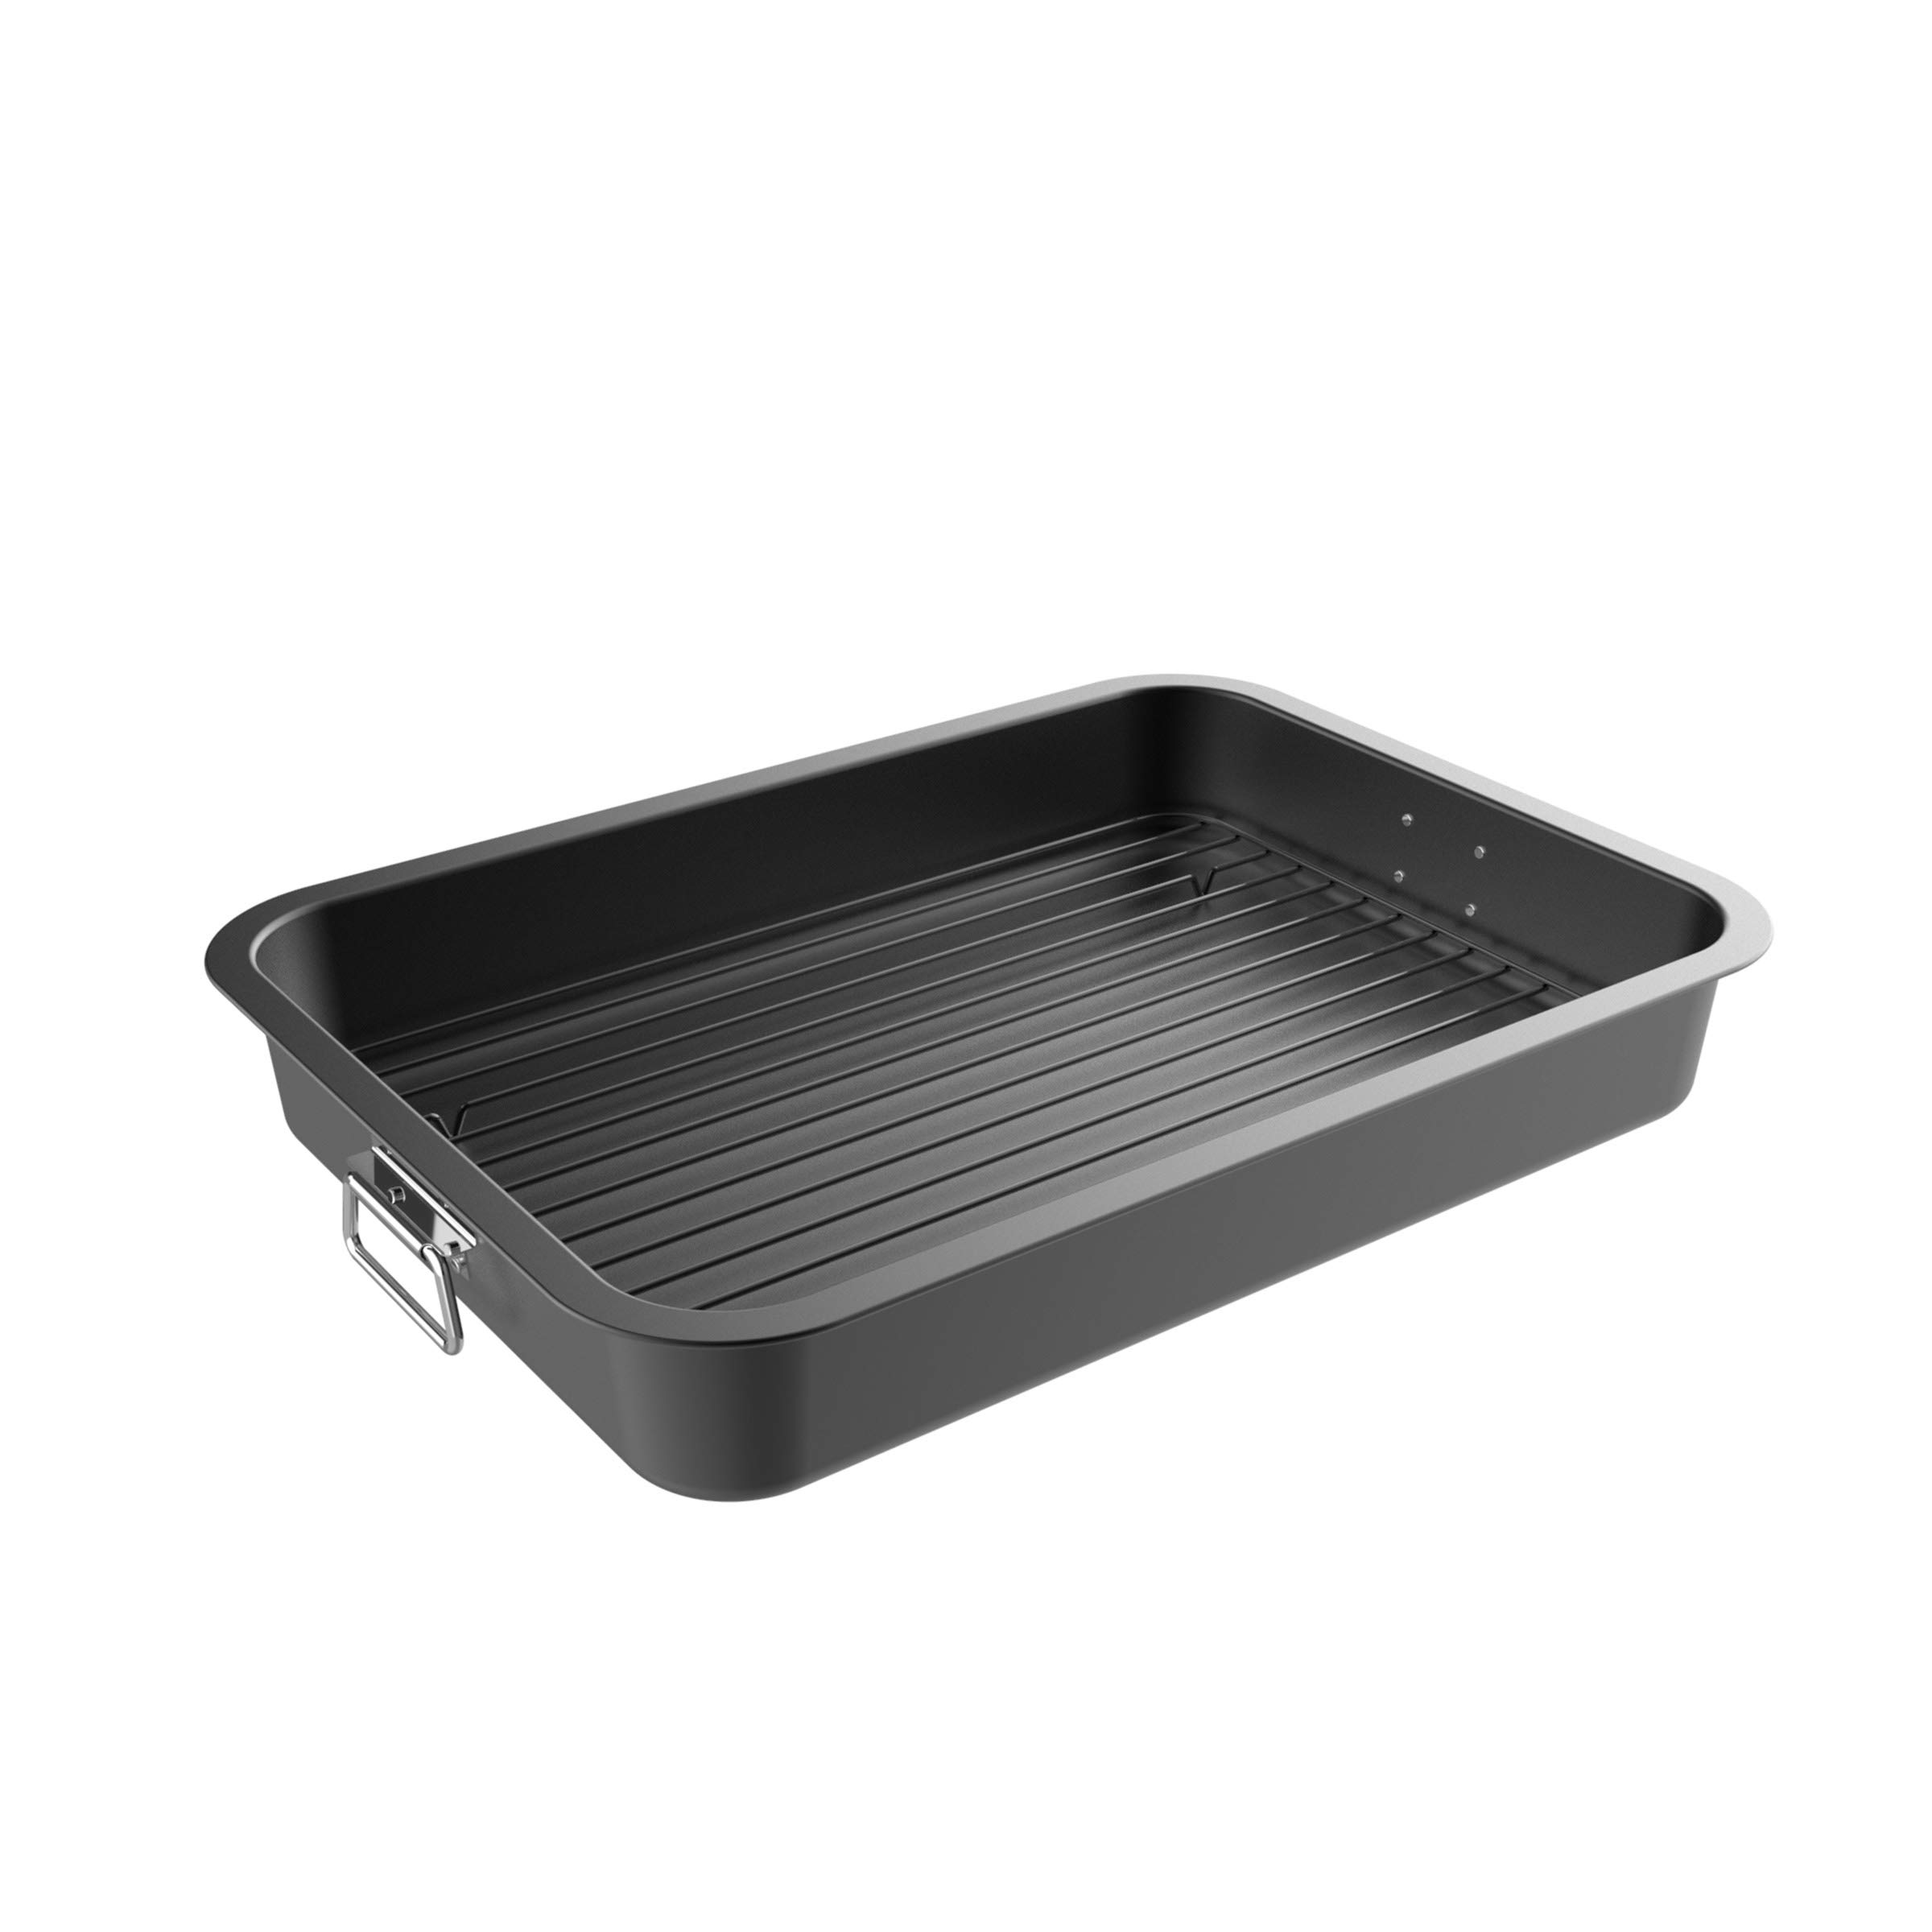 Classic Cuisine 82-KIT1107 Roasting Pan with Flat Rack-Nonstick Oven Roaster and and Removable Tray-Drain Fat and Grease for Healthier Cooking-Kitchen Cookware